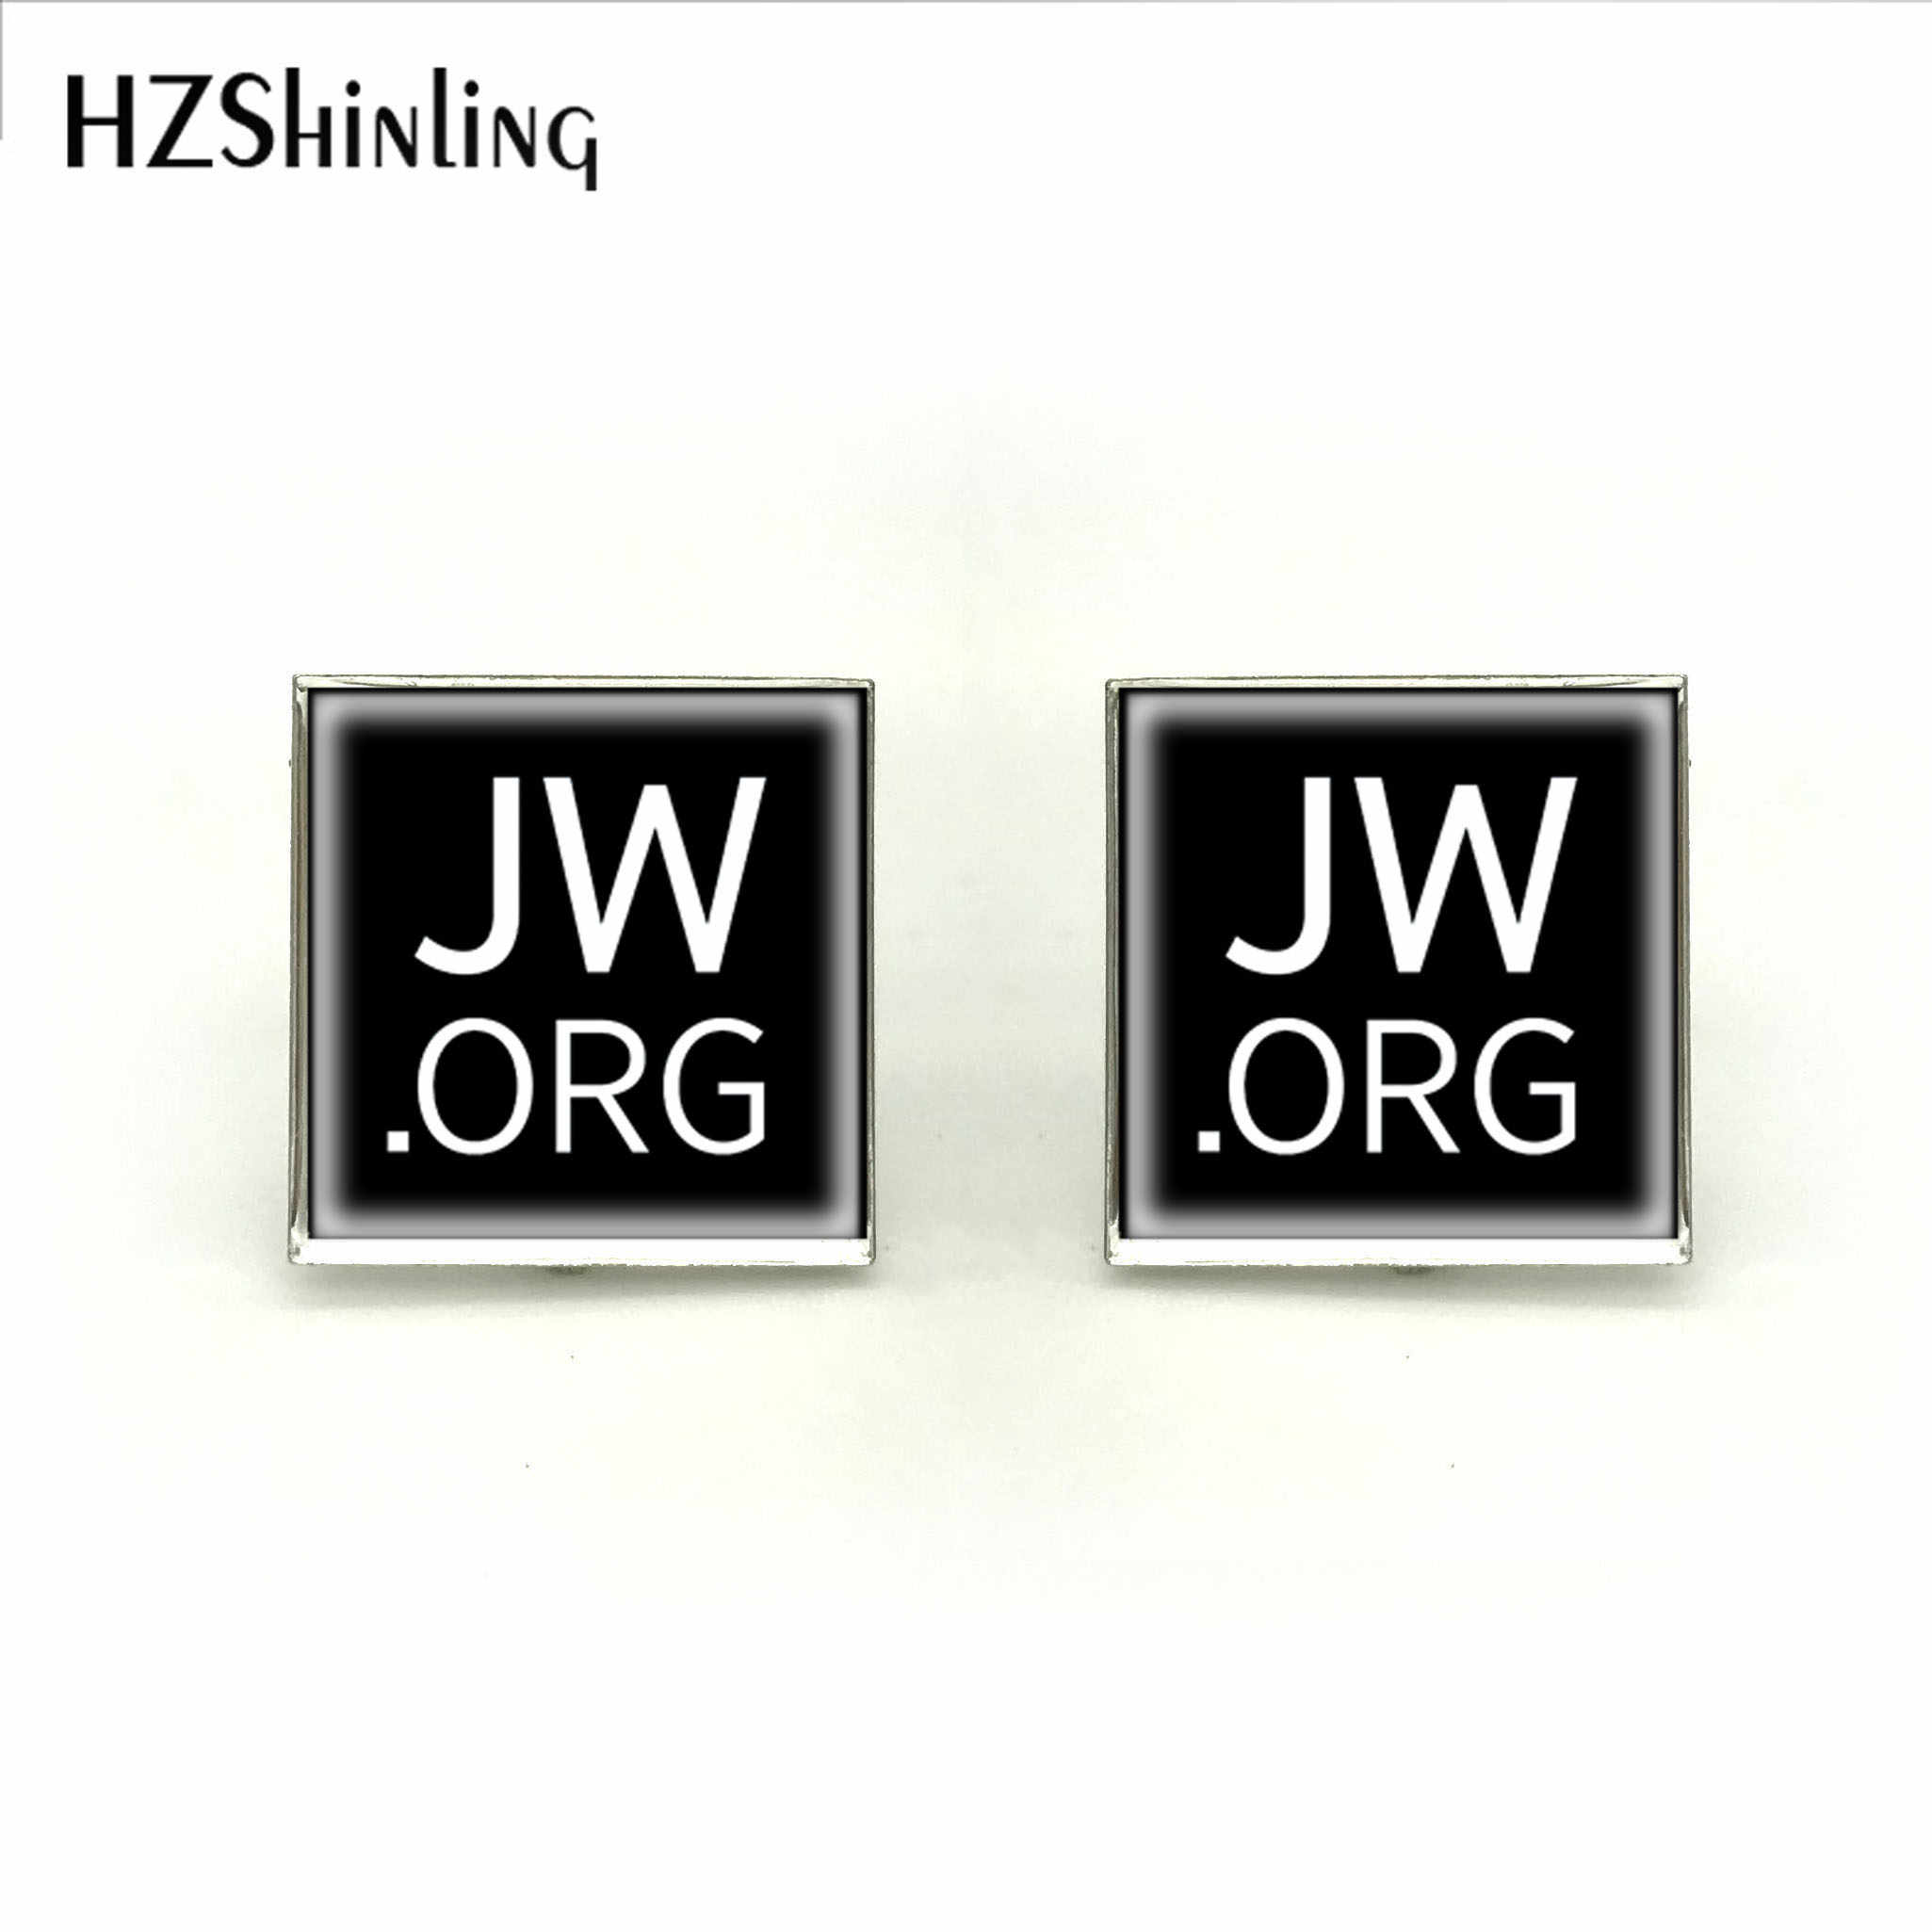 2018 New Square JW.ORG Cufflink Sympol Cufflinks High Quality Brand Silver Handmade Jewelry For Mens Wedding Cuff